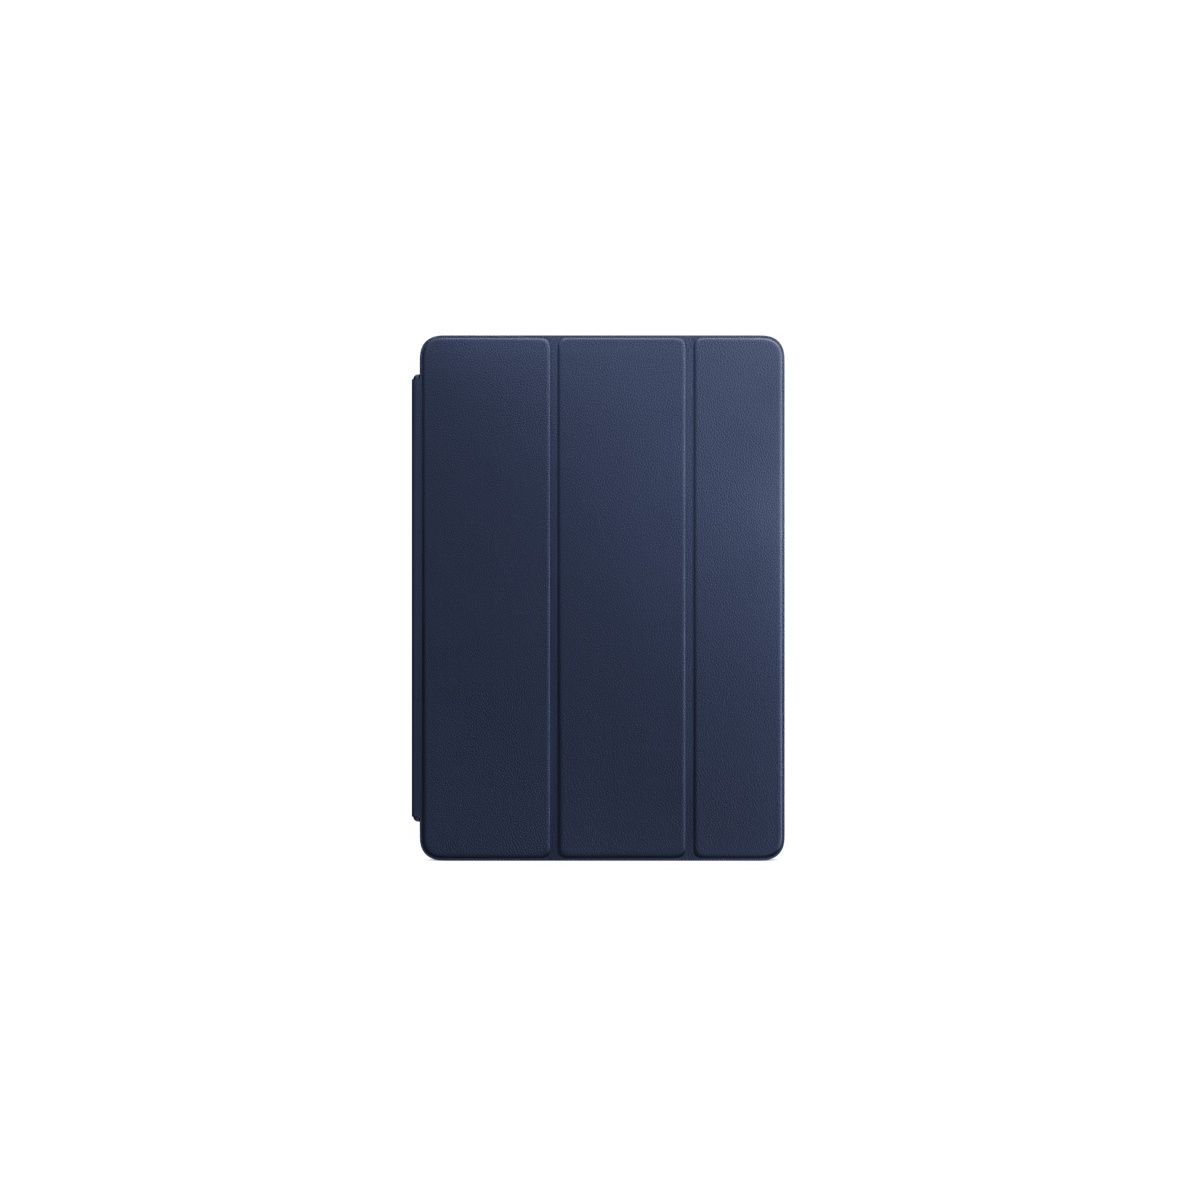 Etui APPLE iPad Pro 10.5 cuir bleu nuit (photo)